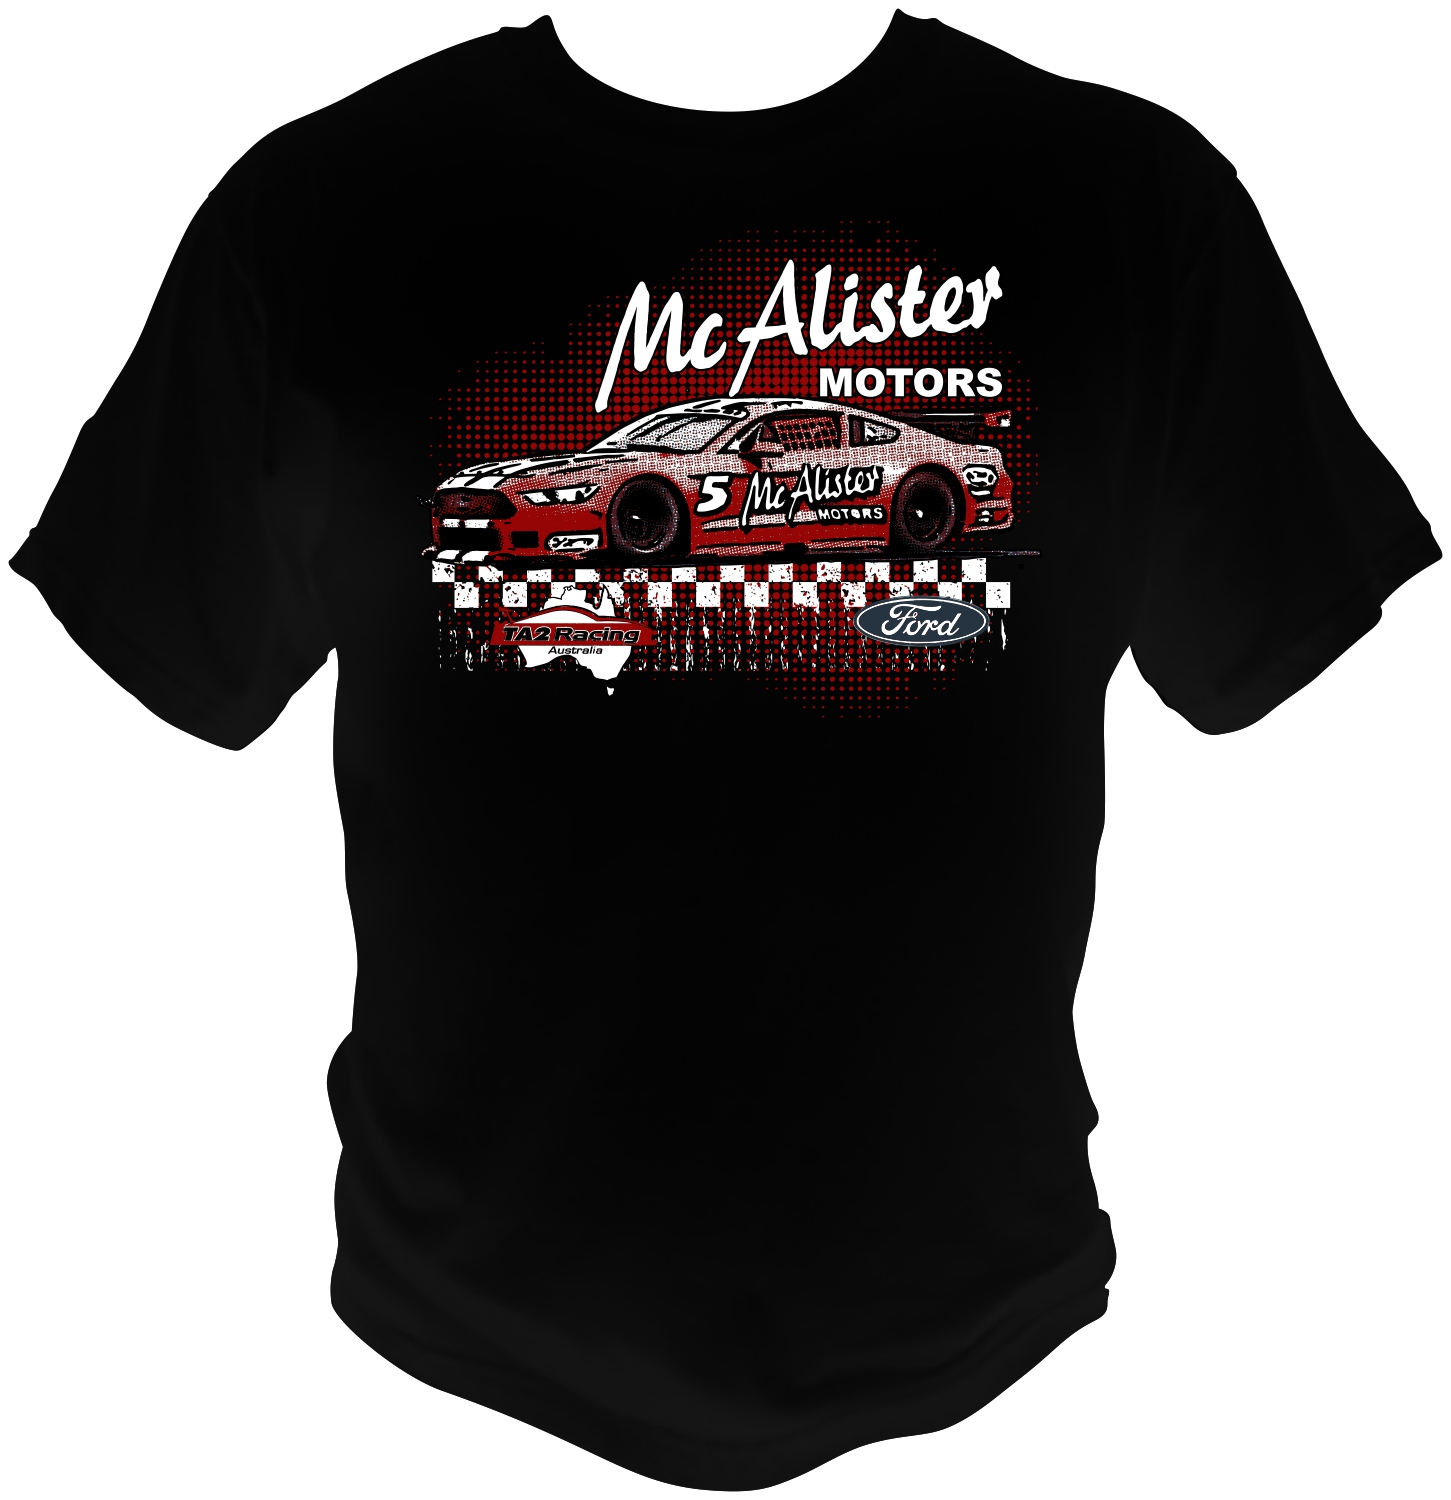 t shirt design for mcalister motors by bacujkov - Racing T Shirt Design Ideas